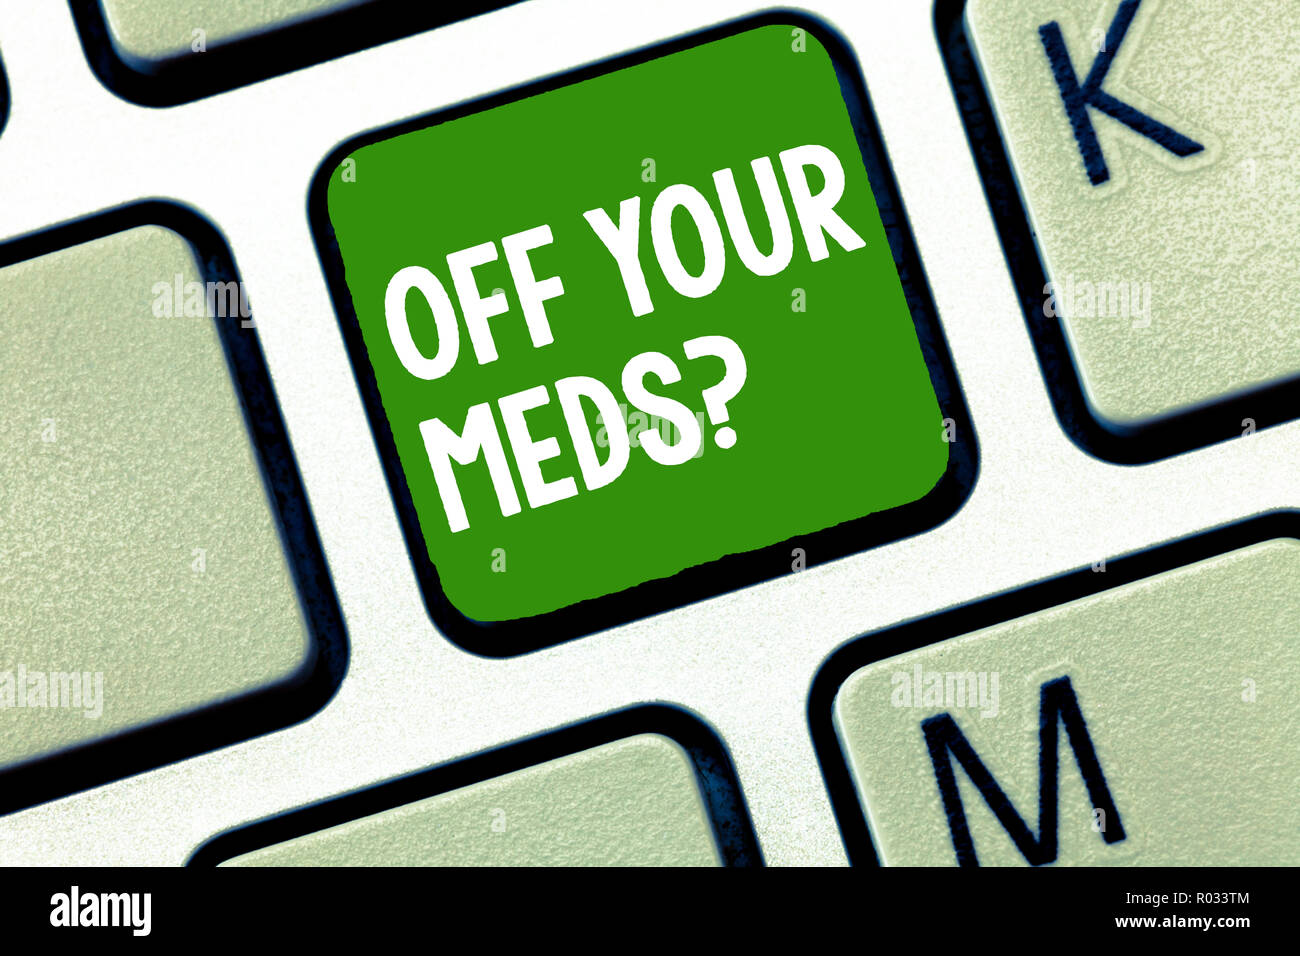 Handwriting text Off Your Meds question. Concept meaning Stopping the usage of prescribe medications. - Stock Image